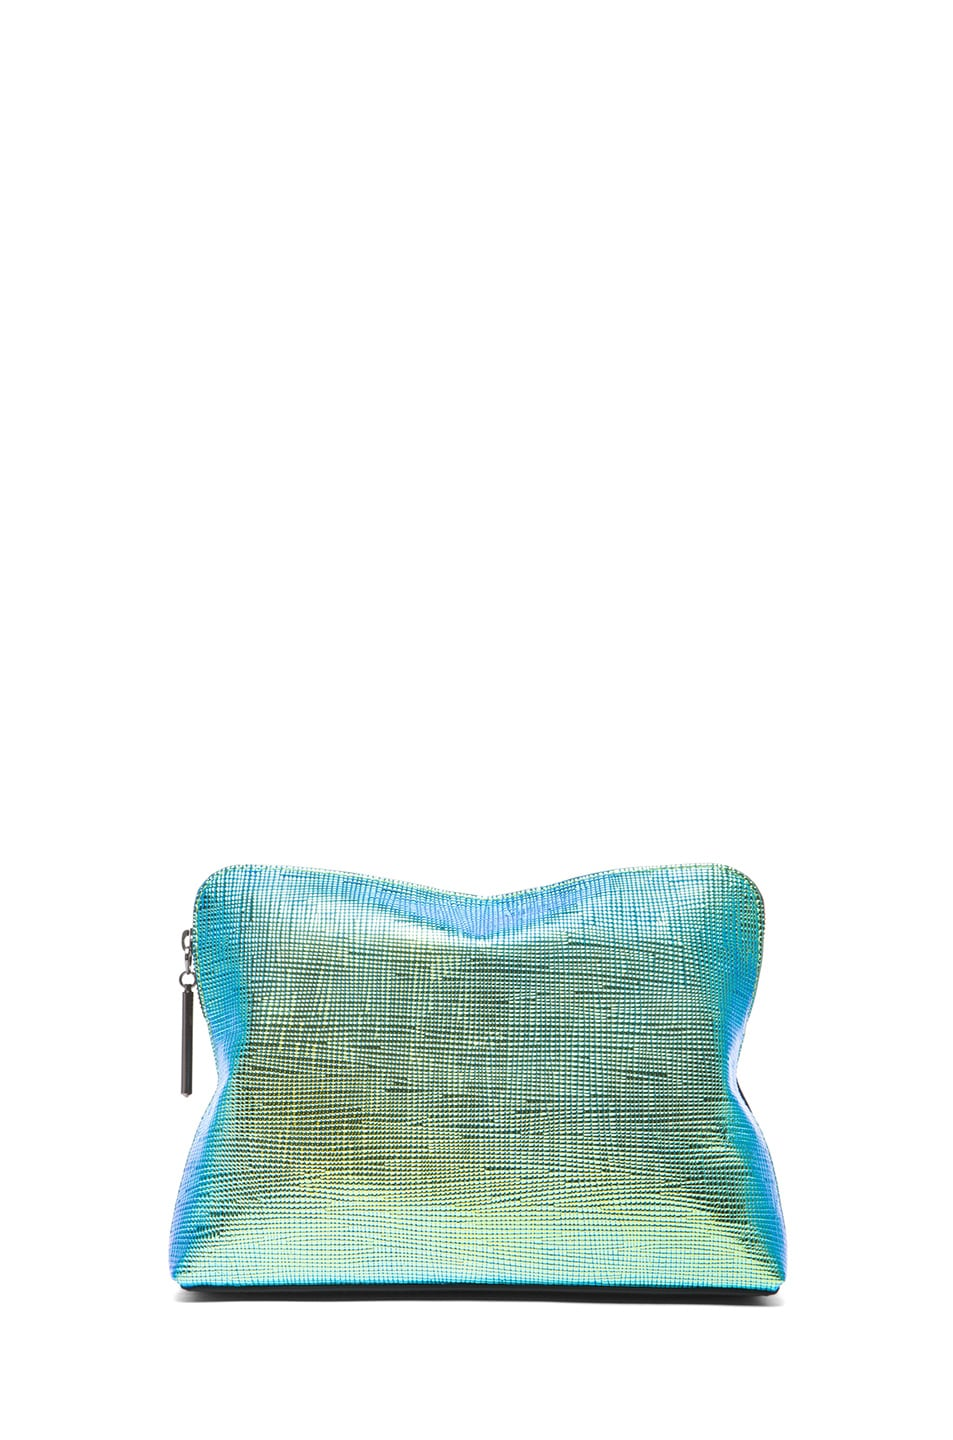 Image 1 of 3.1 phillip lim 31 Minute Cosmetic Bag in Blue-Green & Black